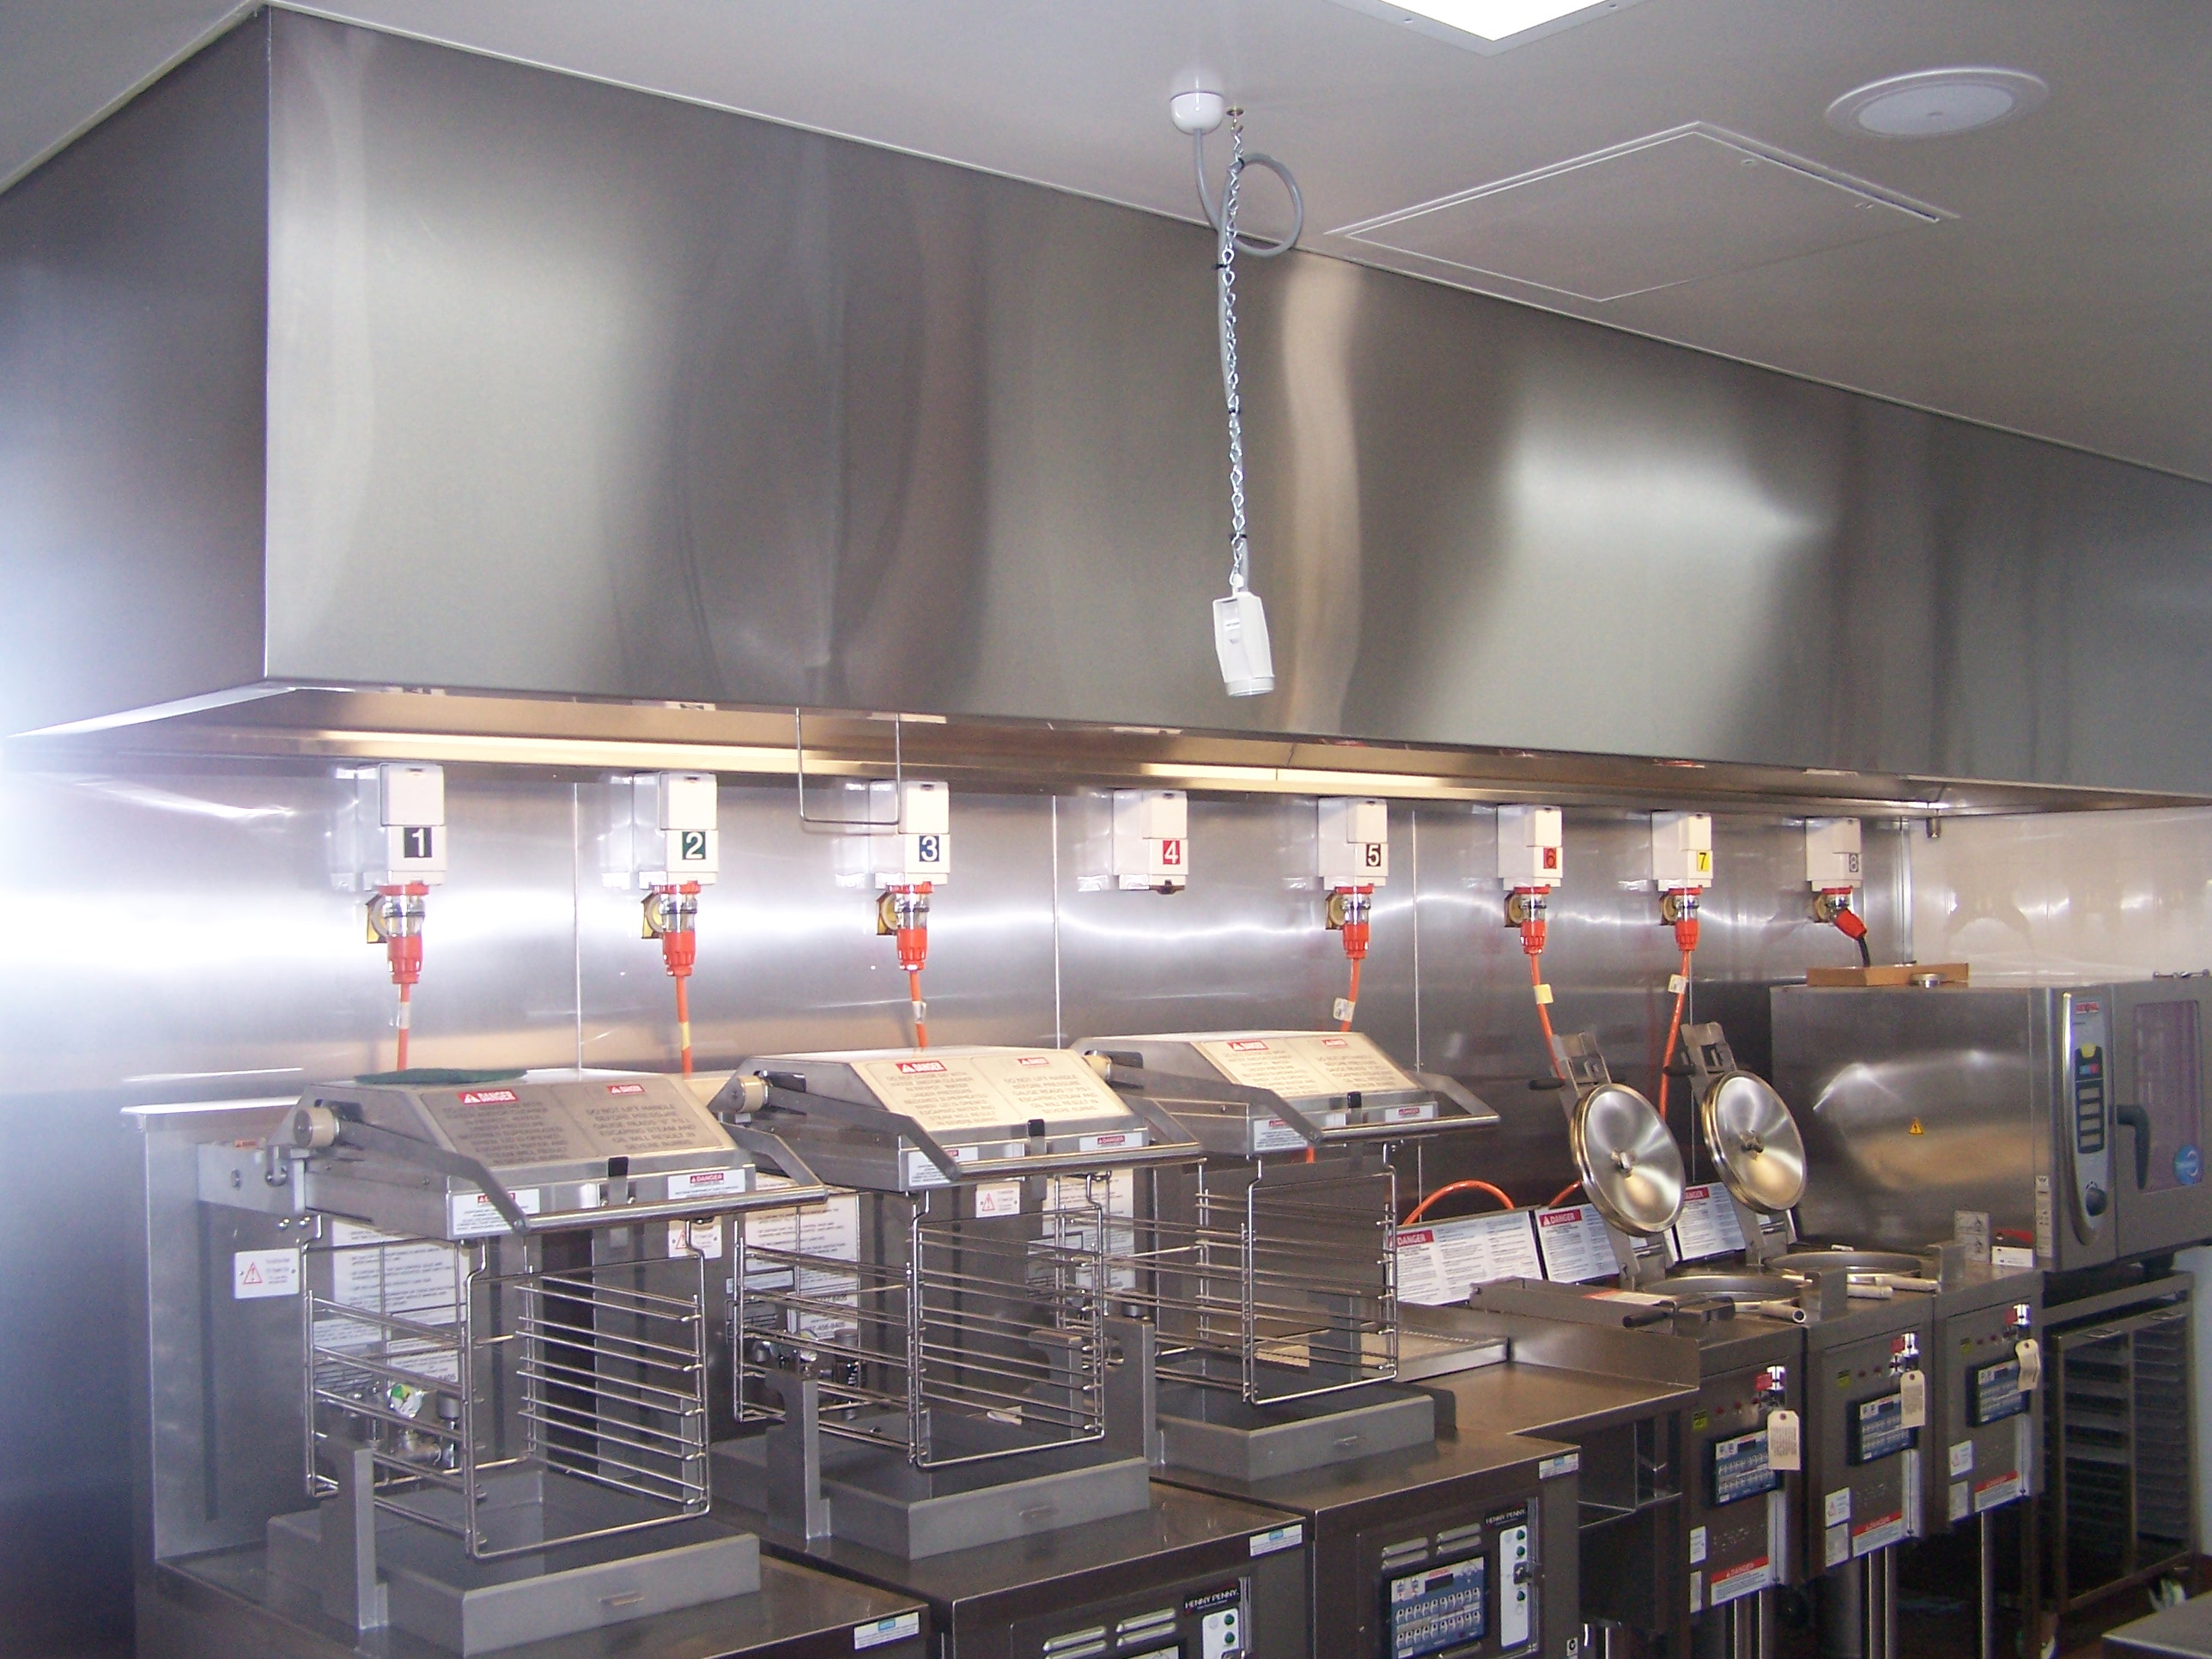 Exhaust Hoods Product ~ Exhaust hoods powell stainless steel products